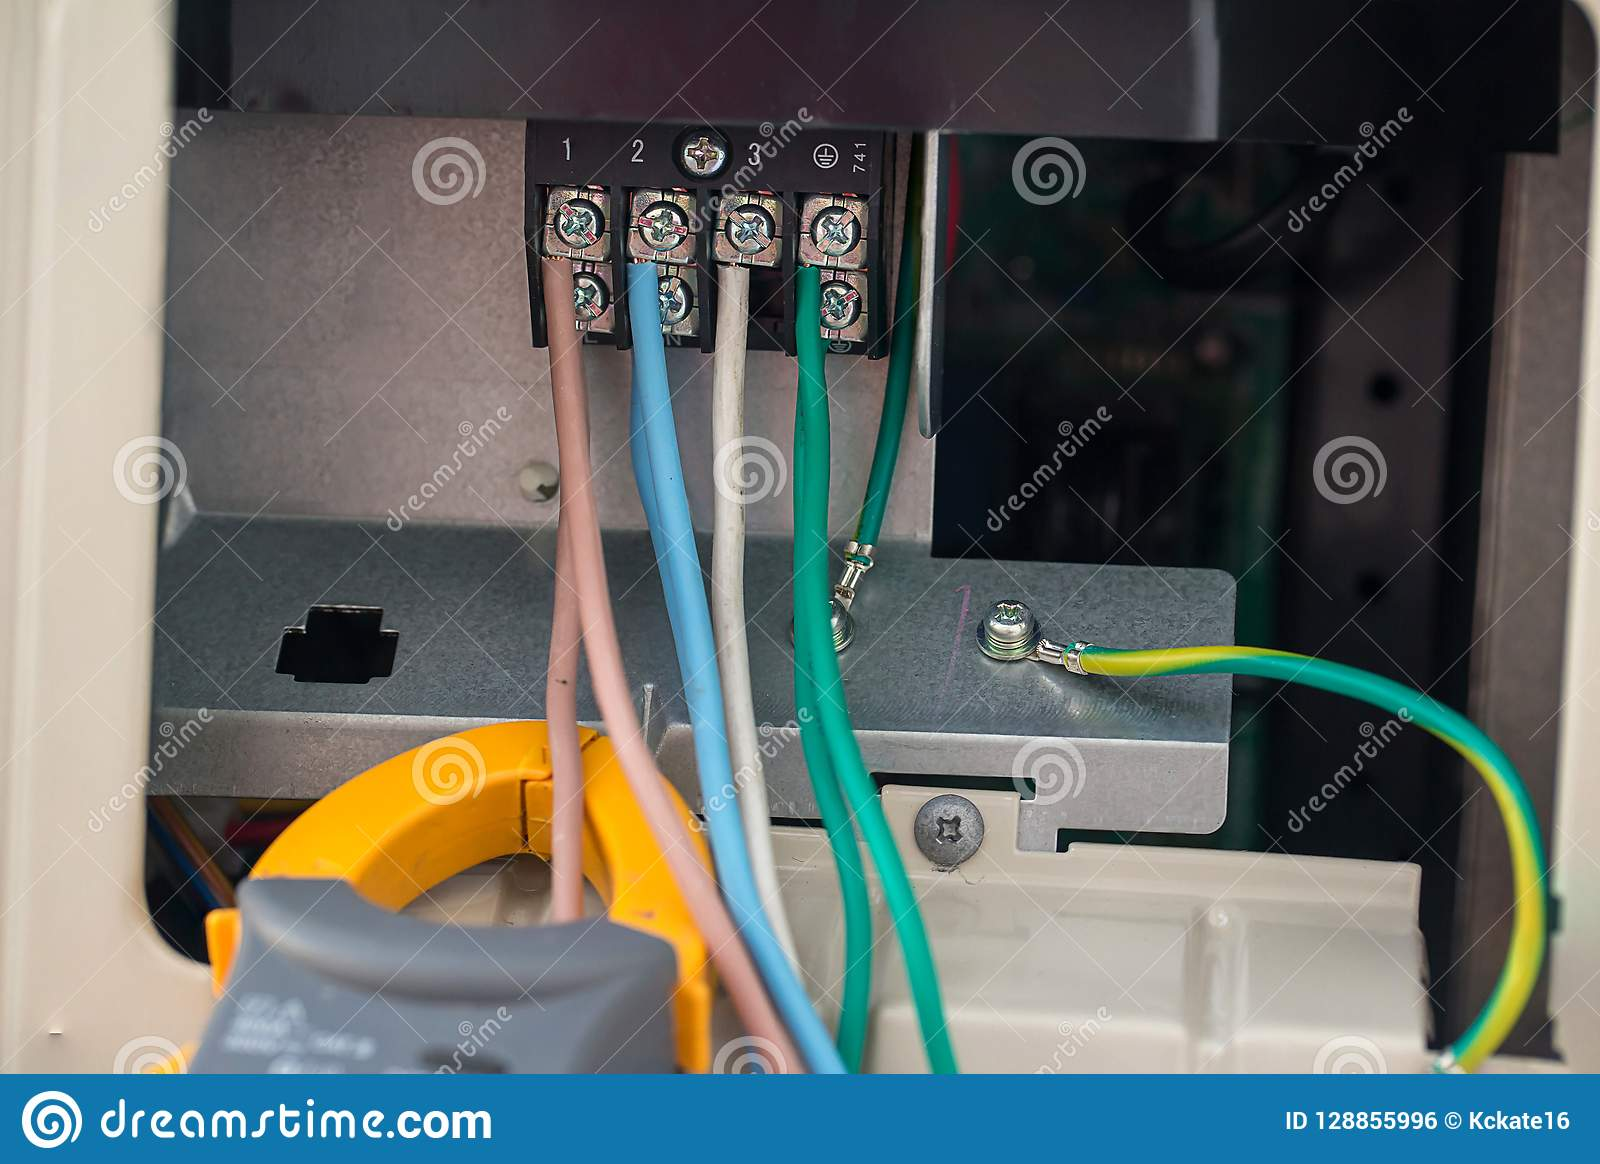 hight resolution of electrical cables with terminal block electrical wires is connected to clamps in power system of